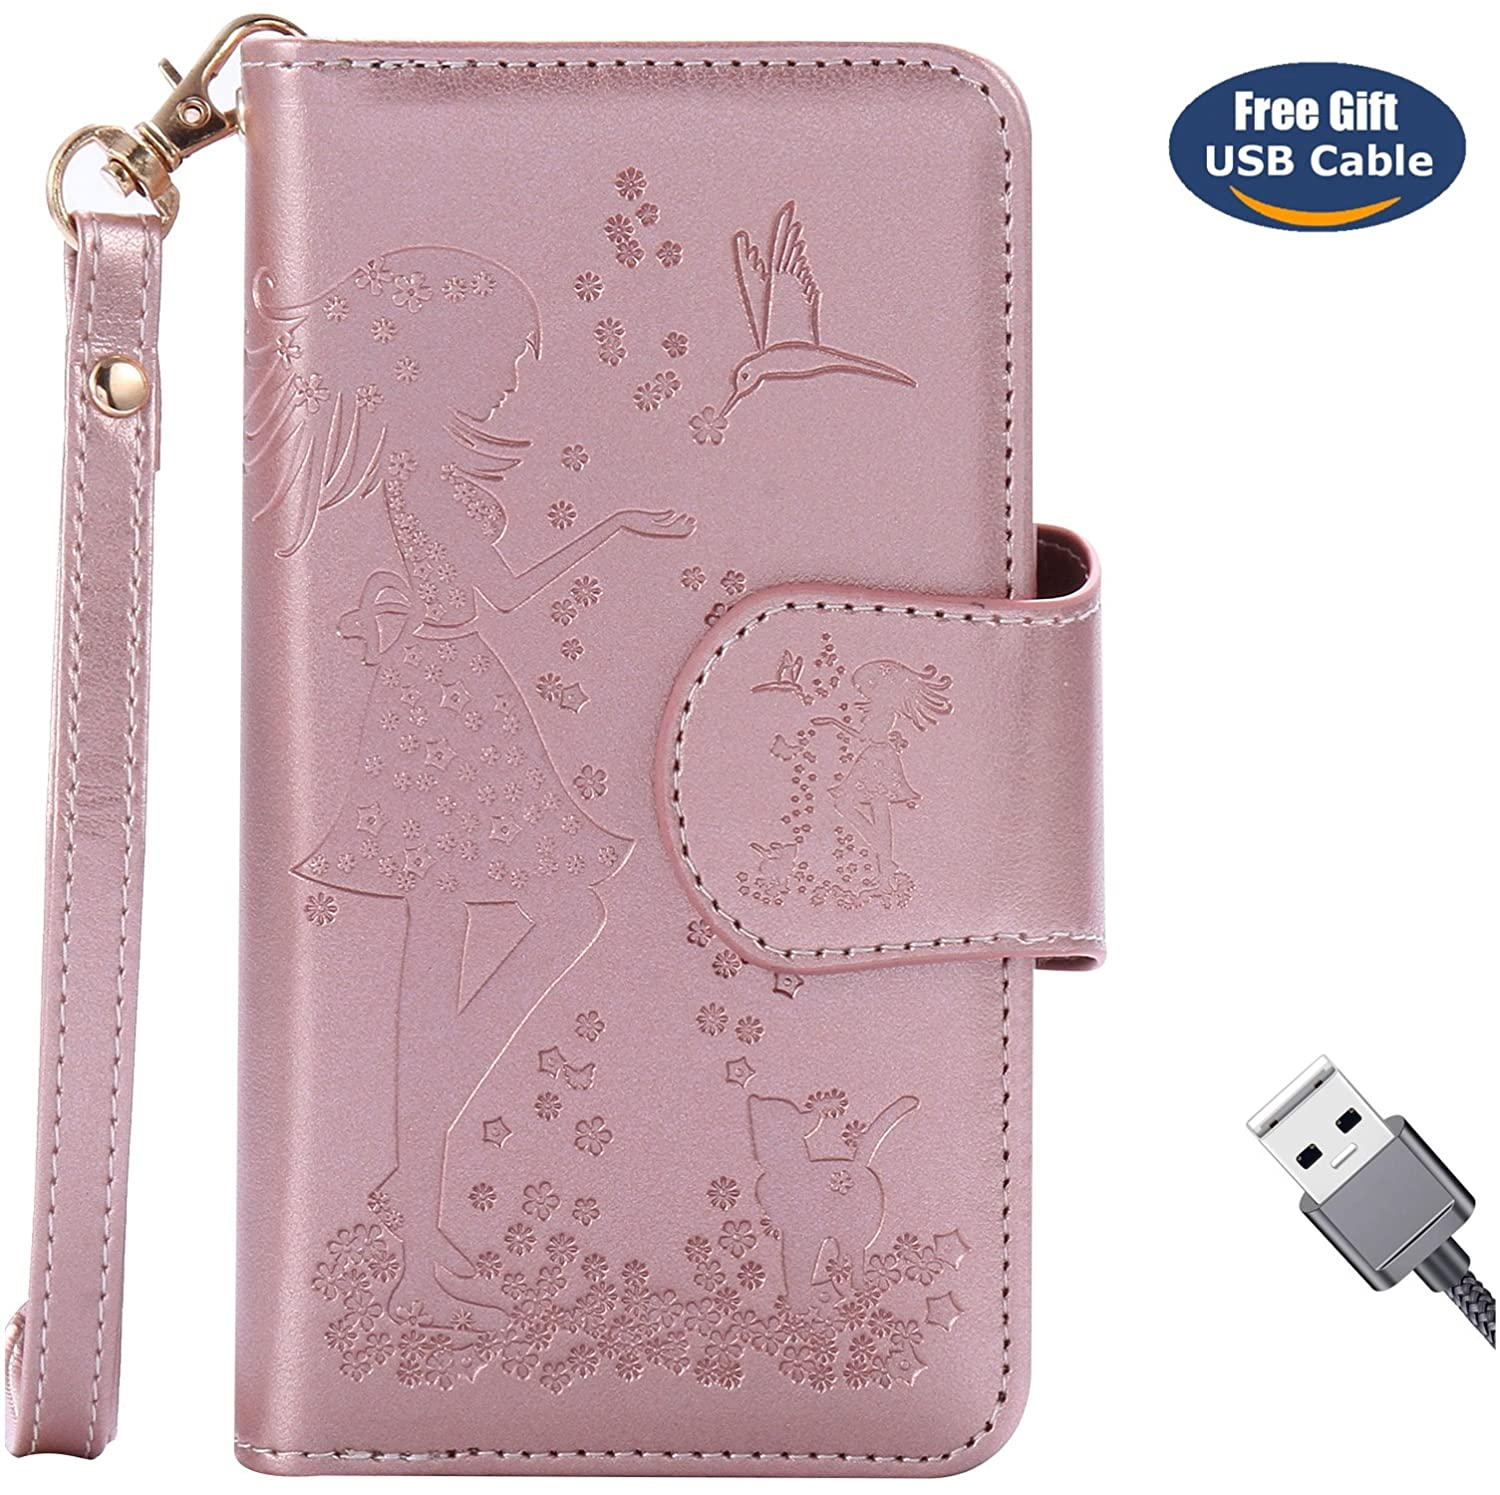 Galaxy A3 2016 case, Galaxy A3 2016 cover, Aireratze Premium Soft PU Leather Cute Cat Girl Pattern [10 Card Slots Handbag Walllet Purse Large Capacity Easy-detach Case 360 Full Protection] Case with [Kickstand] 10 Card Holder and ID Slot Key Holder Cash Ho